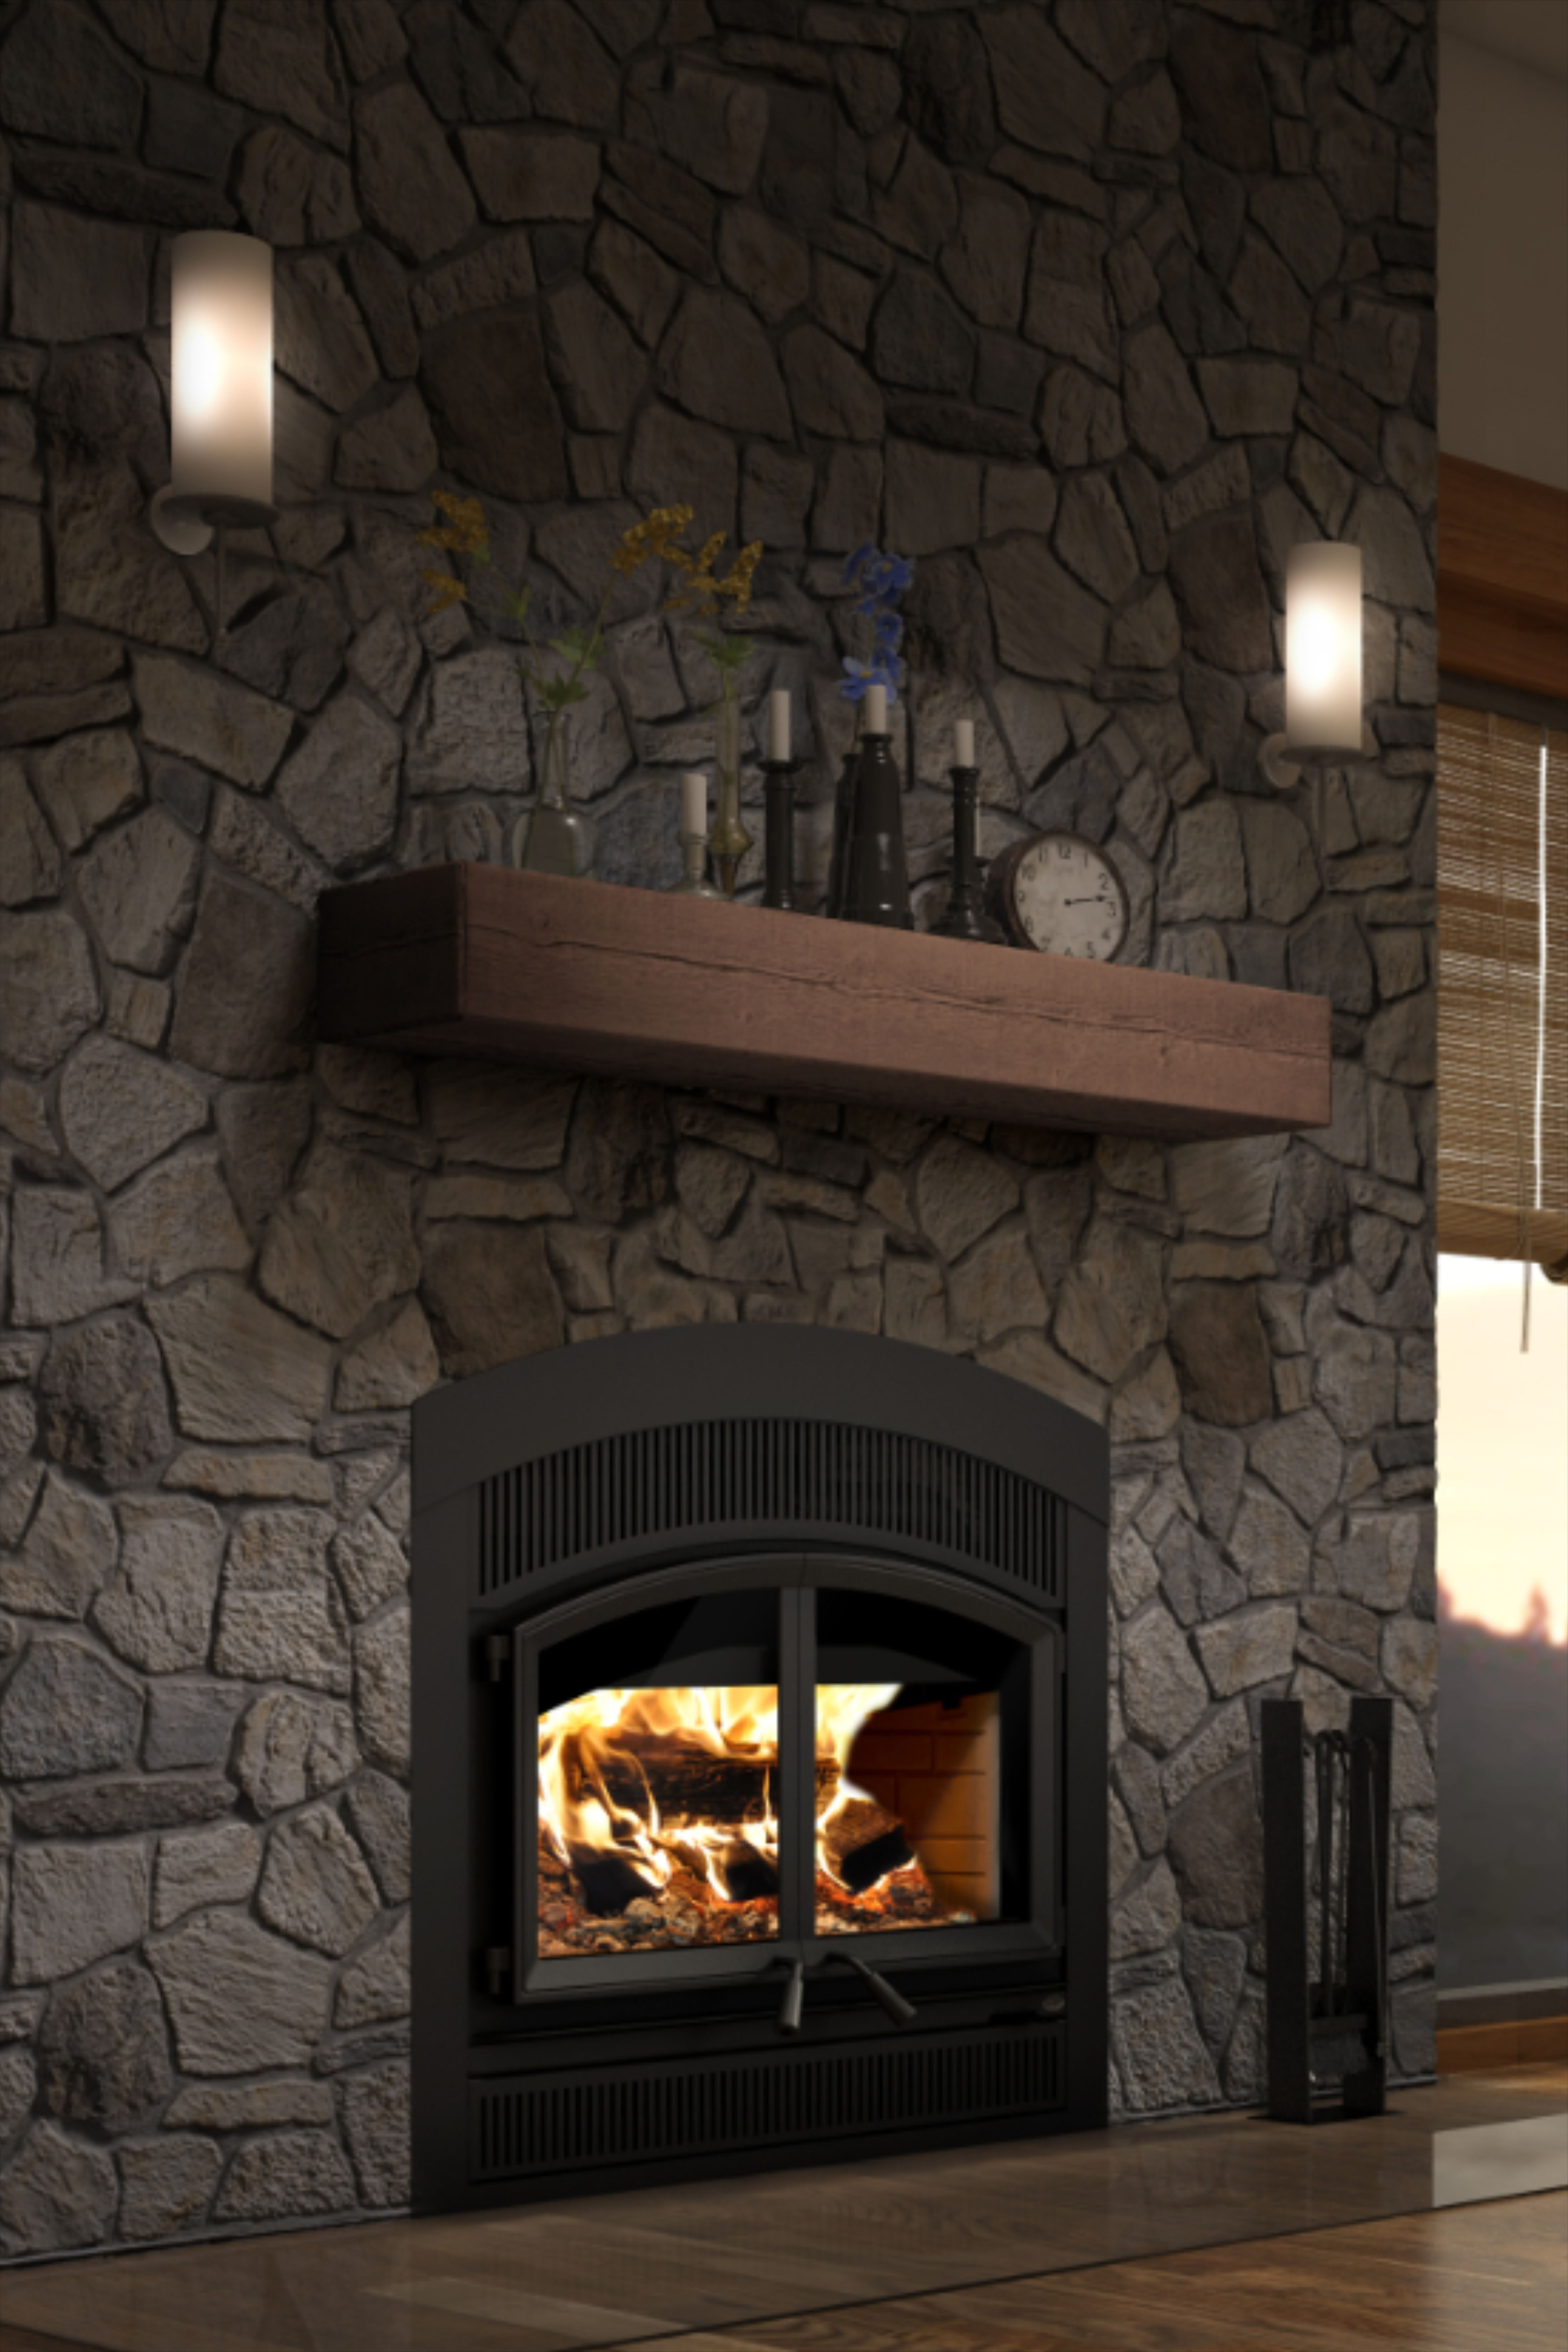 FP15A | WATERLOO ARCHED WOOD FIREPLACE